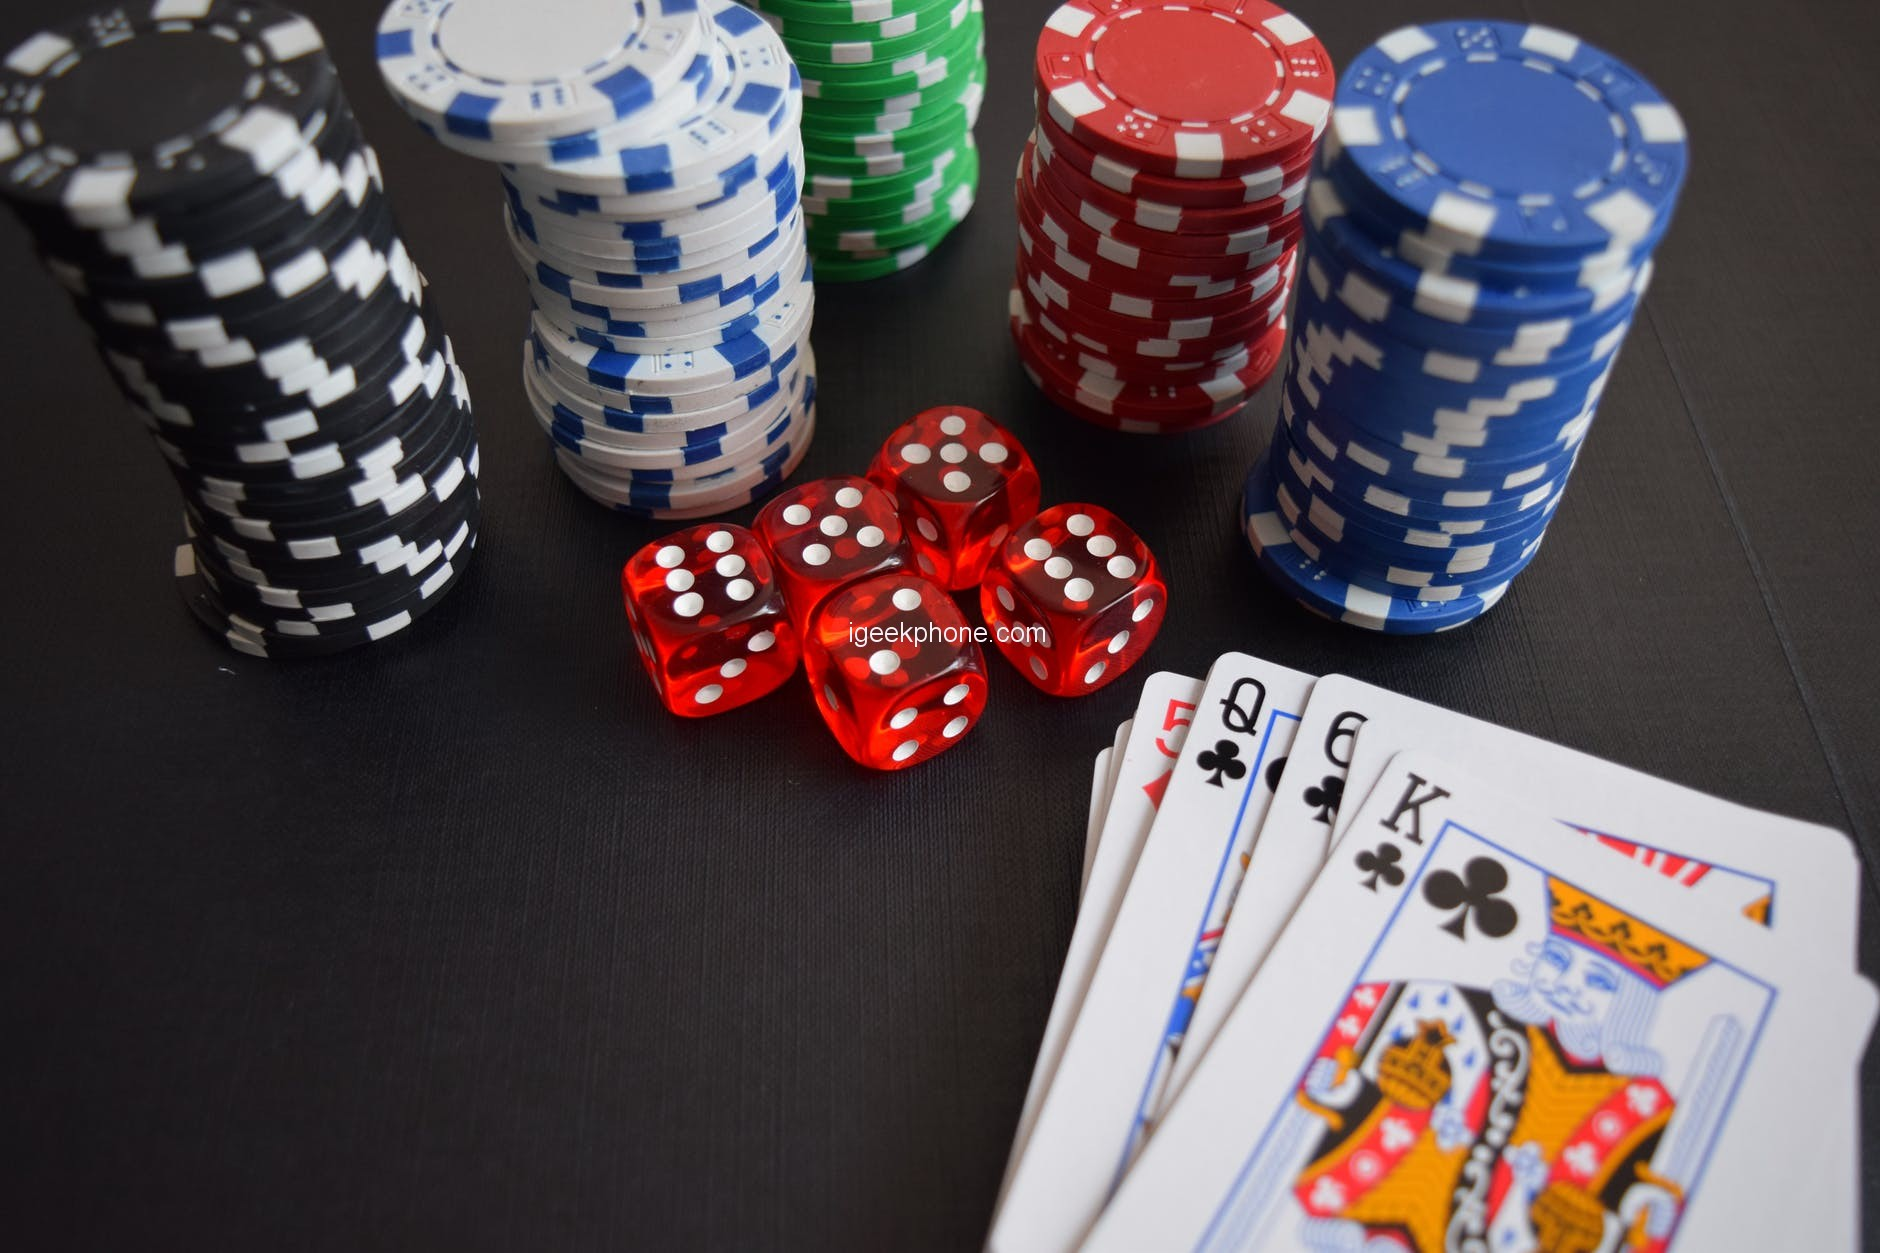 Online Gambling Industry to be Worth Over $87 Billion by 2024 - IGeeKphone  China Phone, Tablet PC, VR, RC Drone News, Reviews